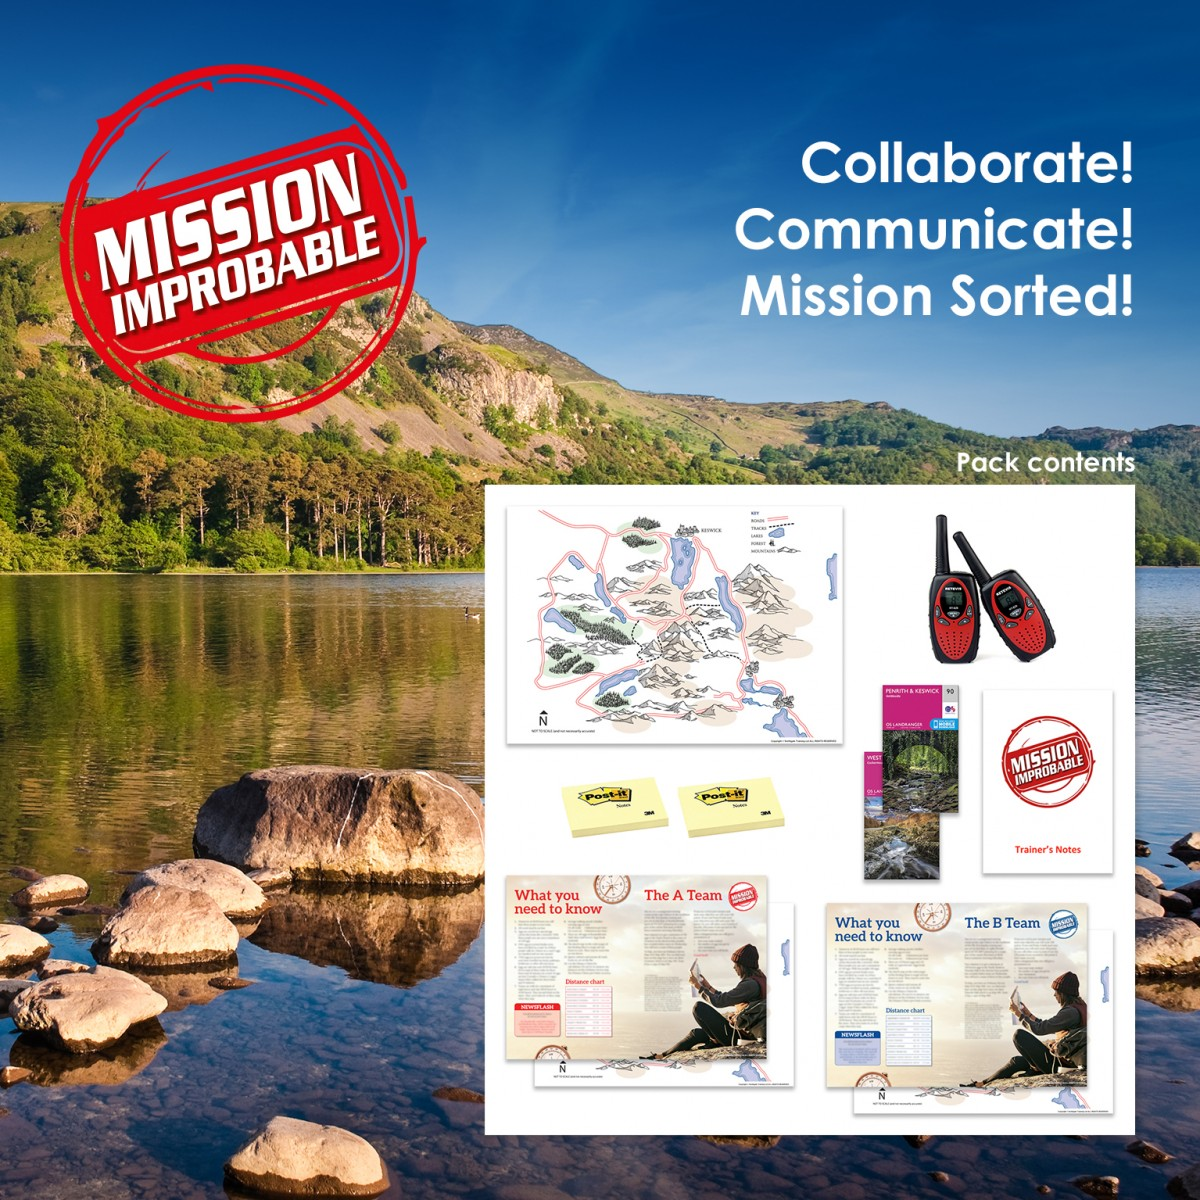 Mission Improbable  | Communication & Teamwork Training Activity